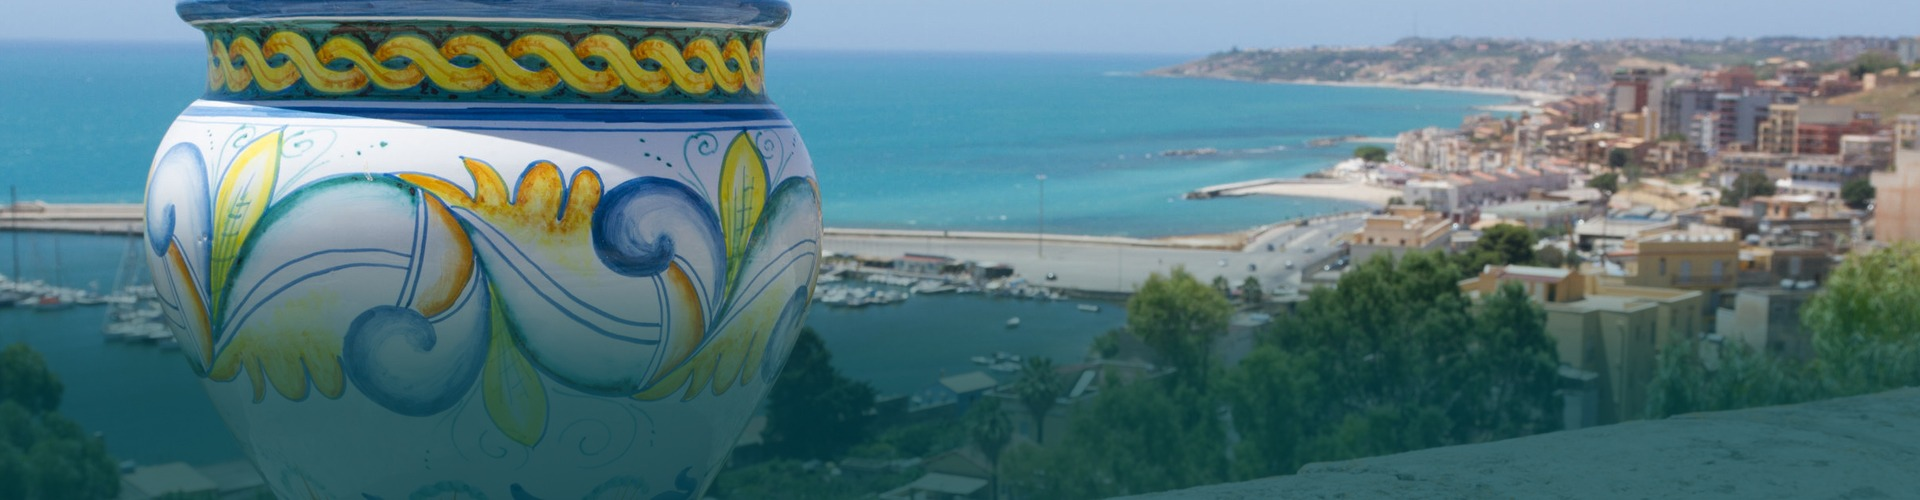 Leasys Rent Sciacca ( Ag )